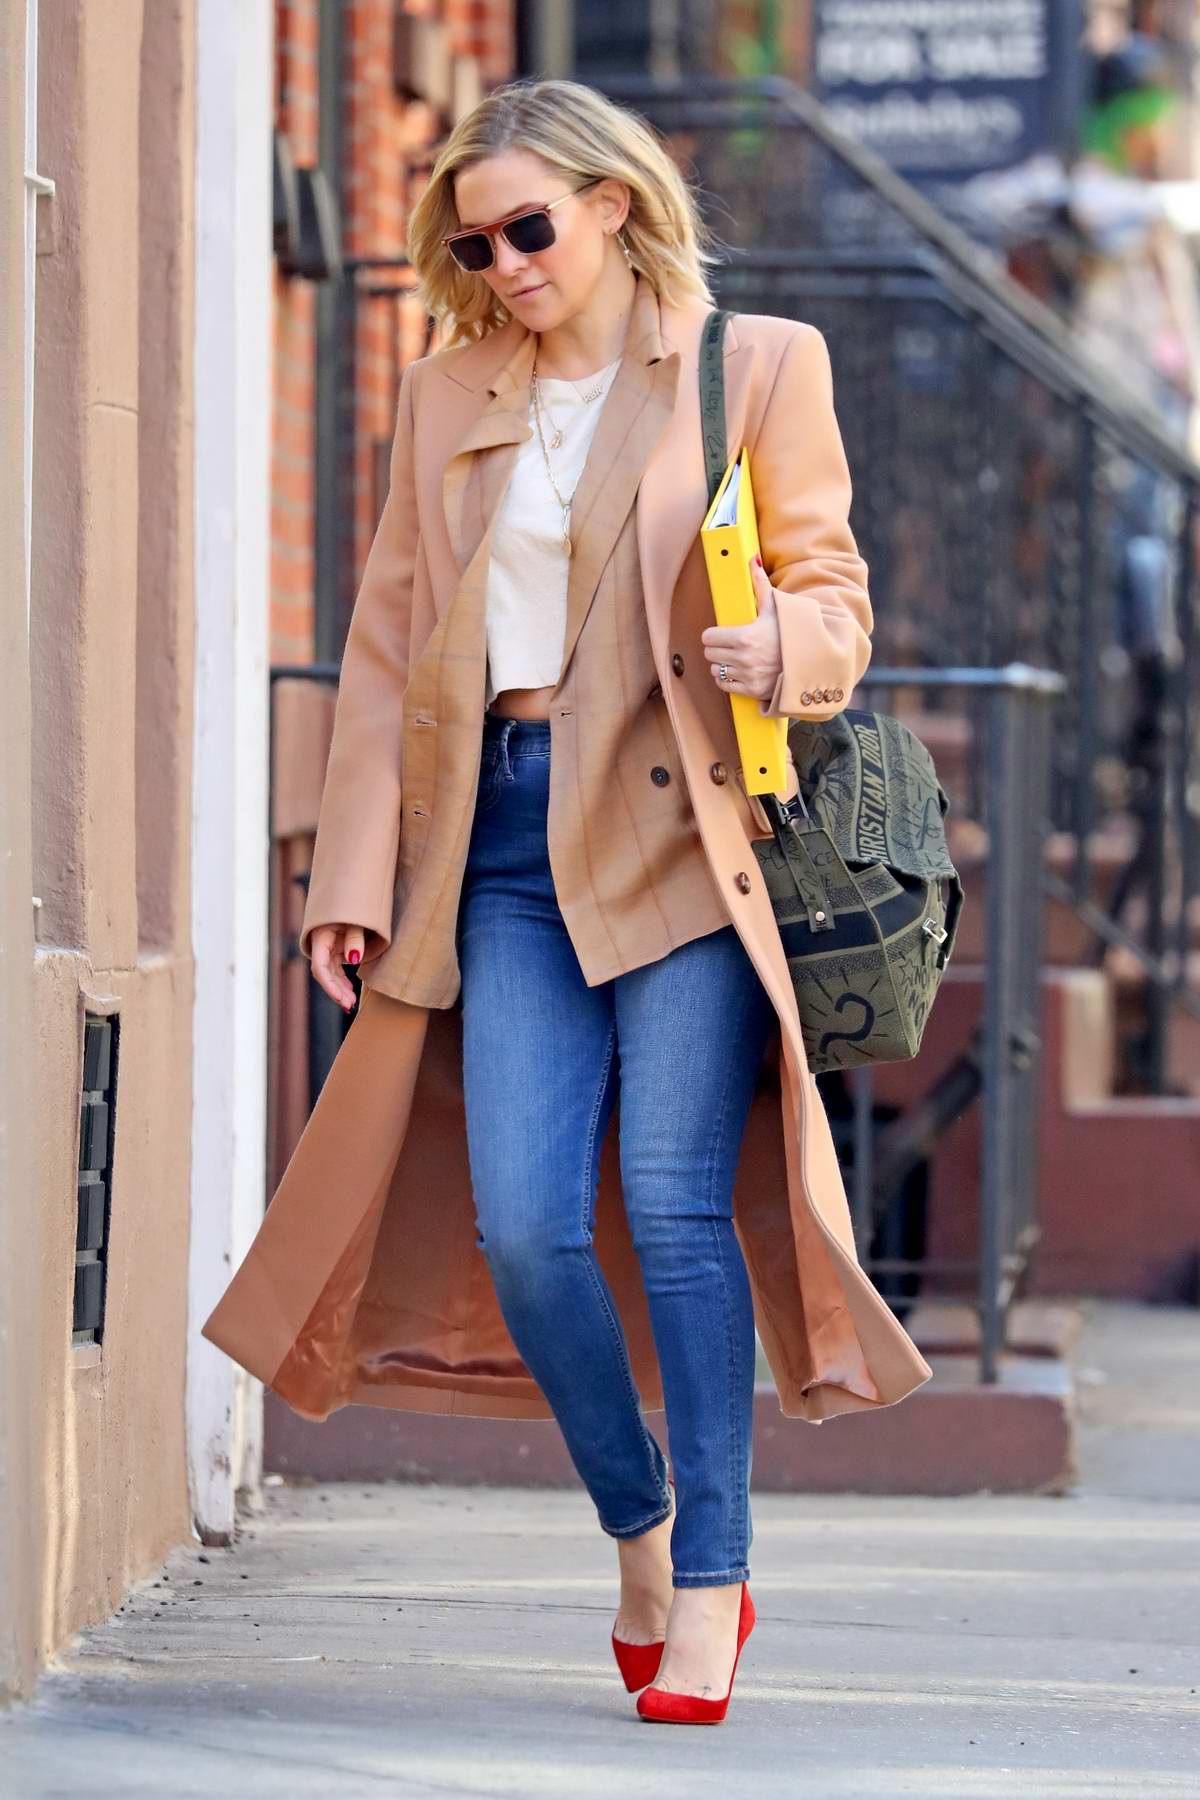 Kate Hudson looks stylish in a peach trench coat and jeans while out in New York City